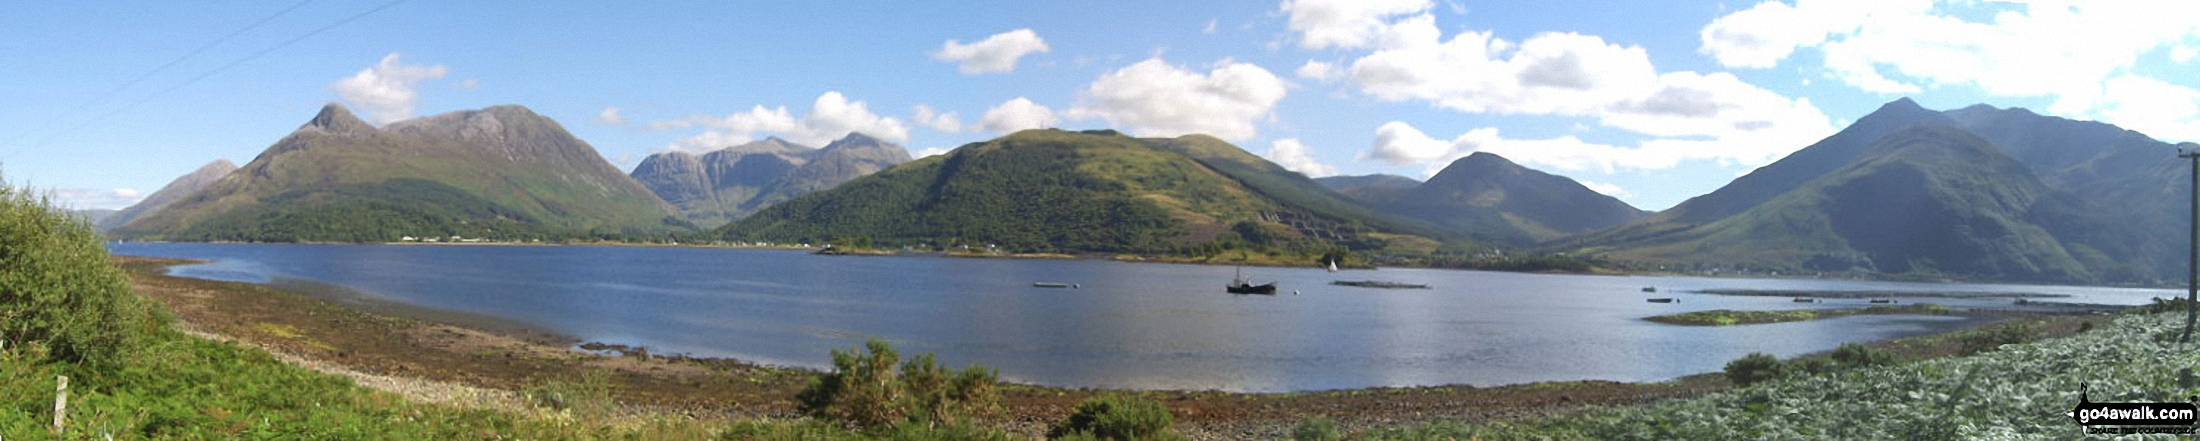 The Pap of Glencoe, The Three Sisters of Glen Coe, Meall Mor, Beinn Fhionnlaidh, Sgorr Dhearg, Beinn a' Bheithir and Sgorr Dhonuill from across Loch Leven